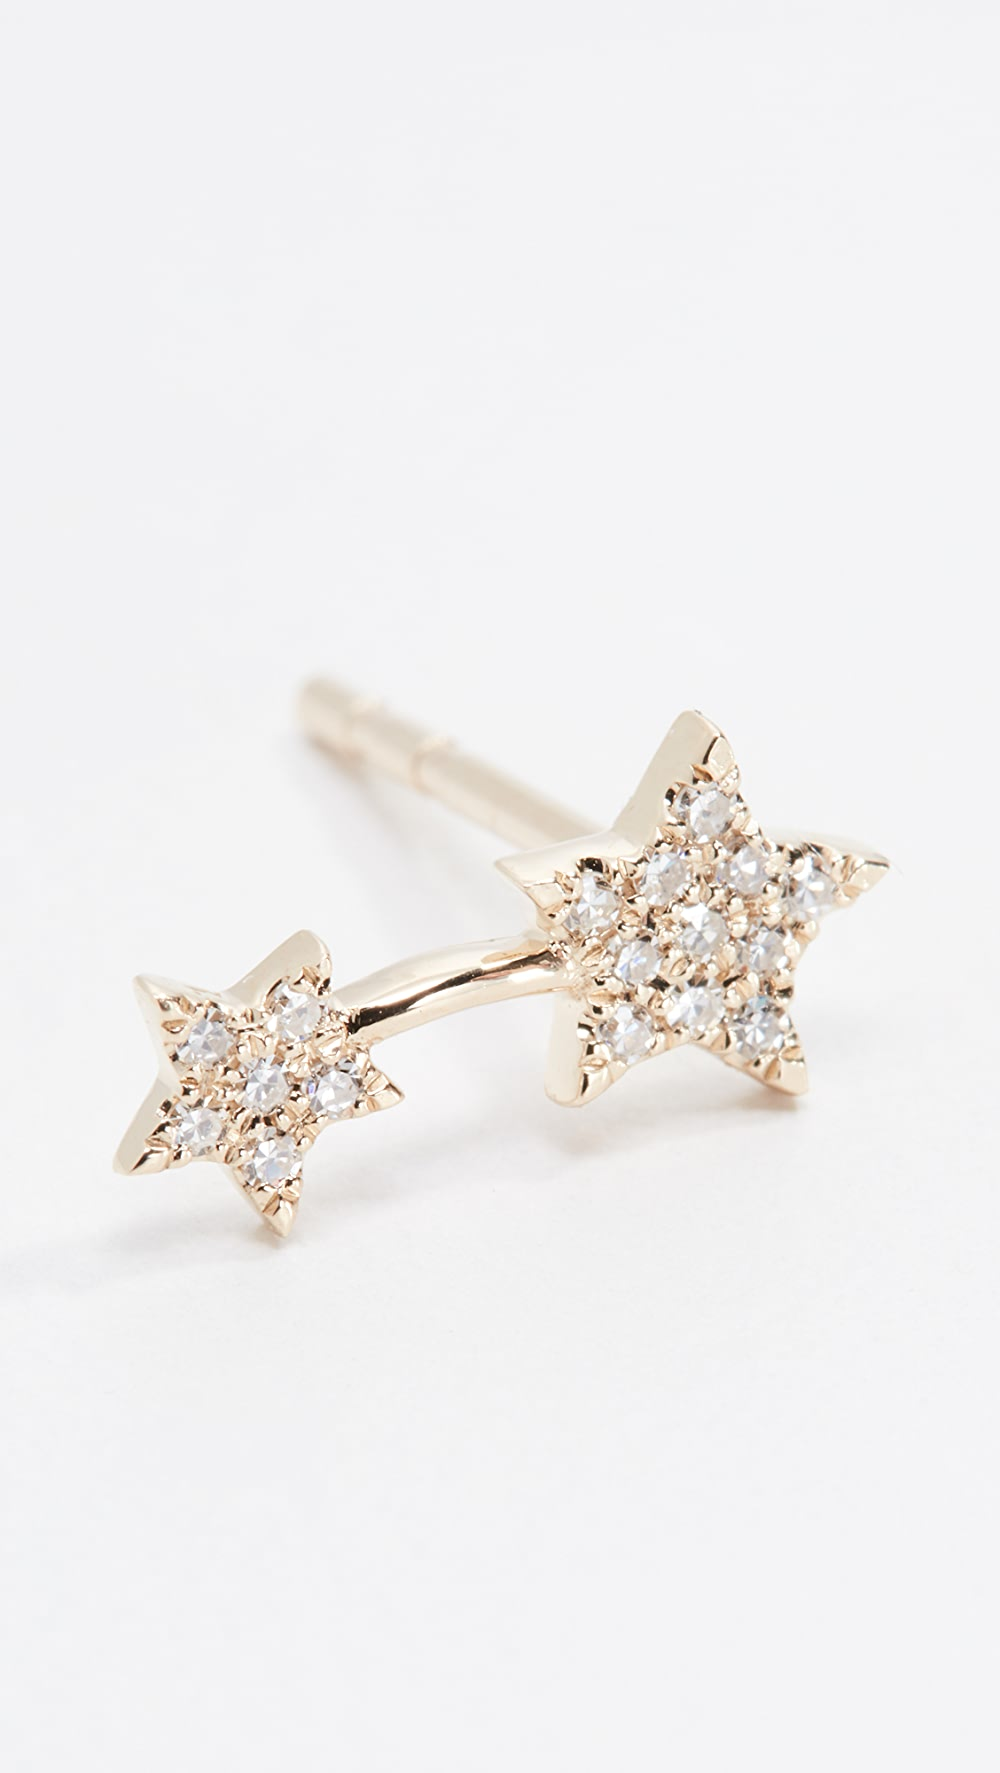 100% Quality Ef Collection - 14k Single Diamond Double Star Stud Earring Preventing Hairs From Graying And Helpful To Retain Complexion